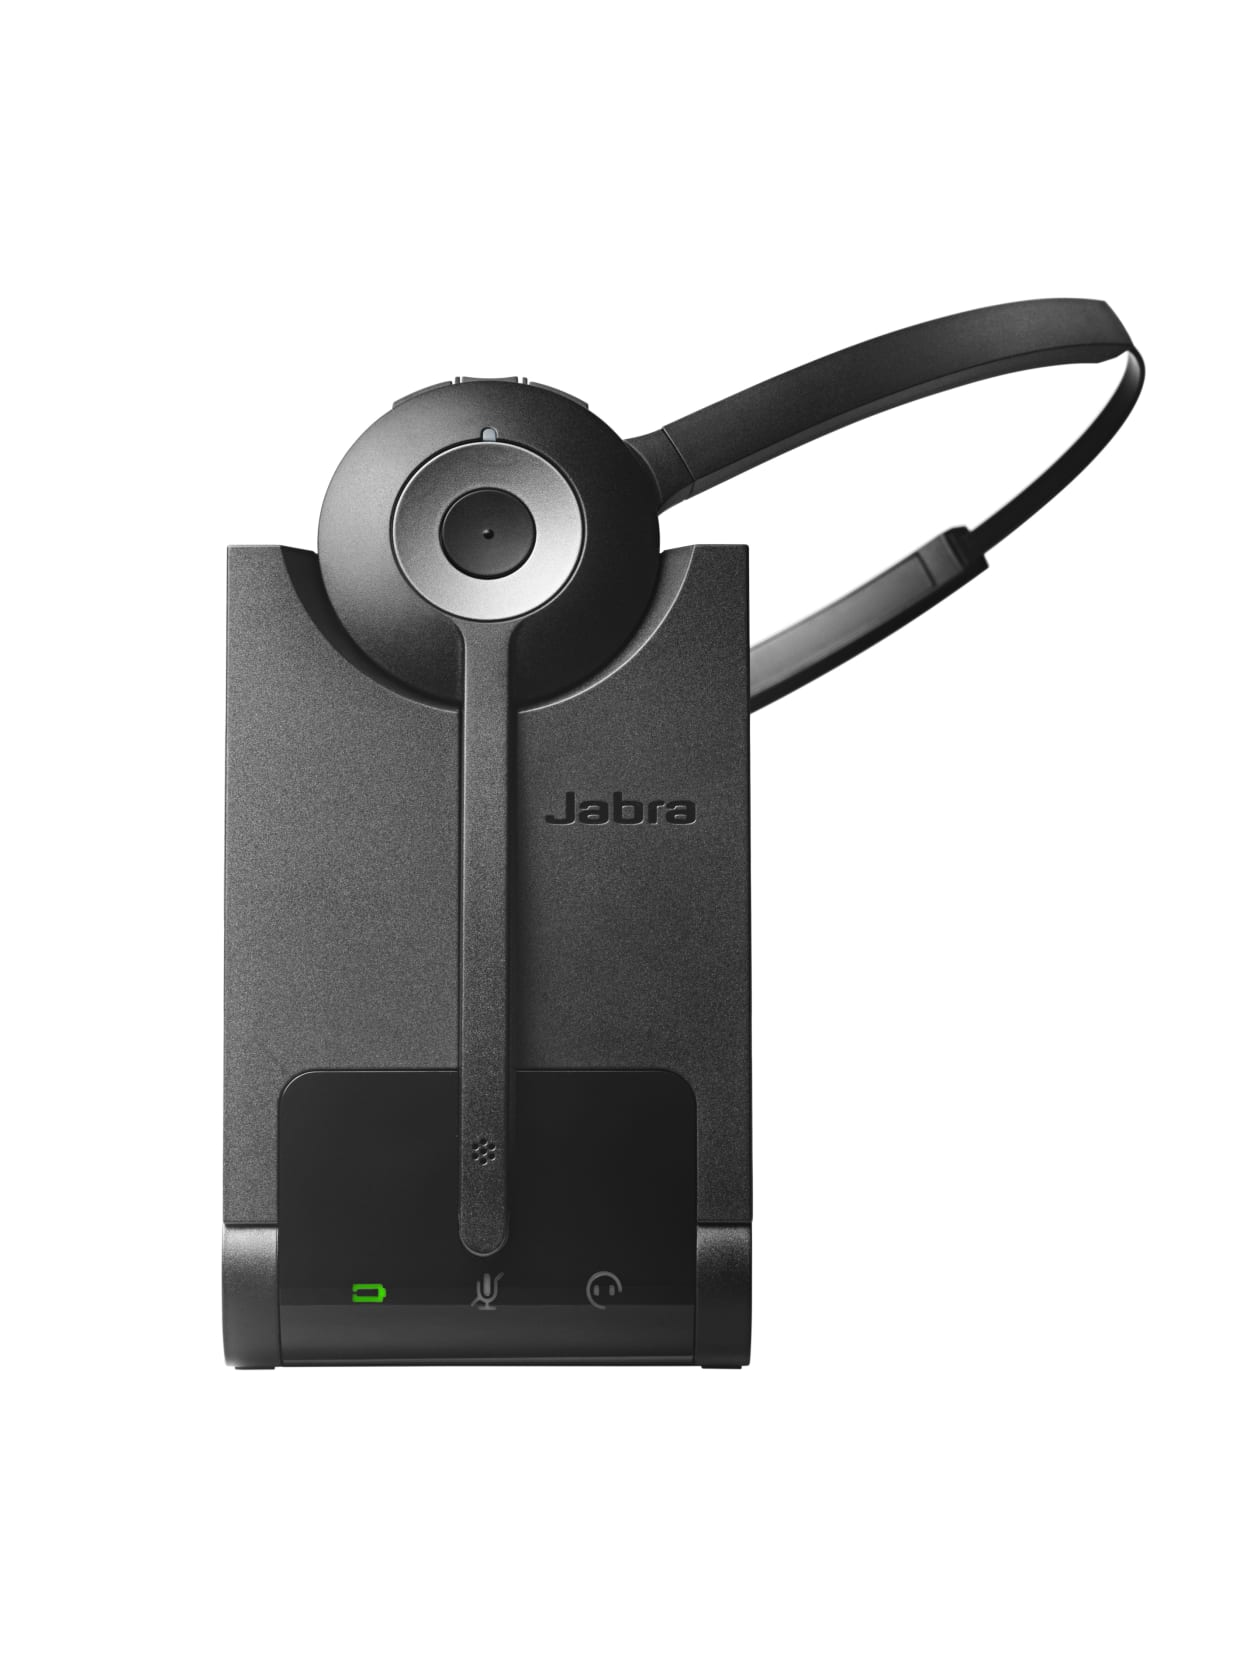 Jabra Pro 920 Mono Headset Mono Wireless Dect 120 Ft Over The Head Over The Ear Behind The Neck Monaural Supra Aural Noise Cancelling Noise Reduction Microphone Office Depot